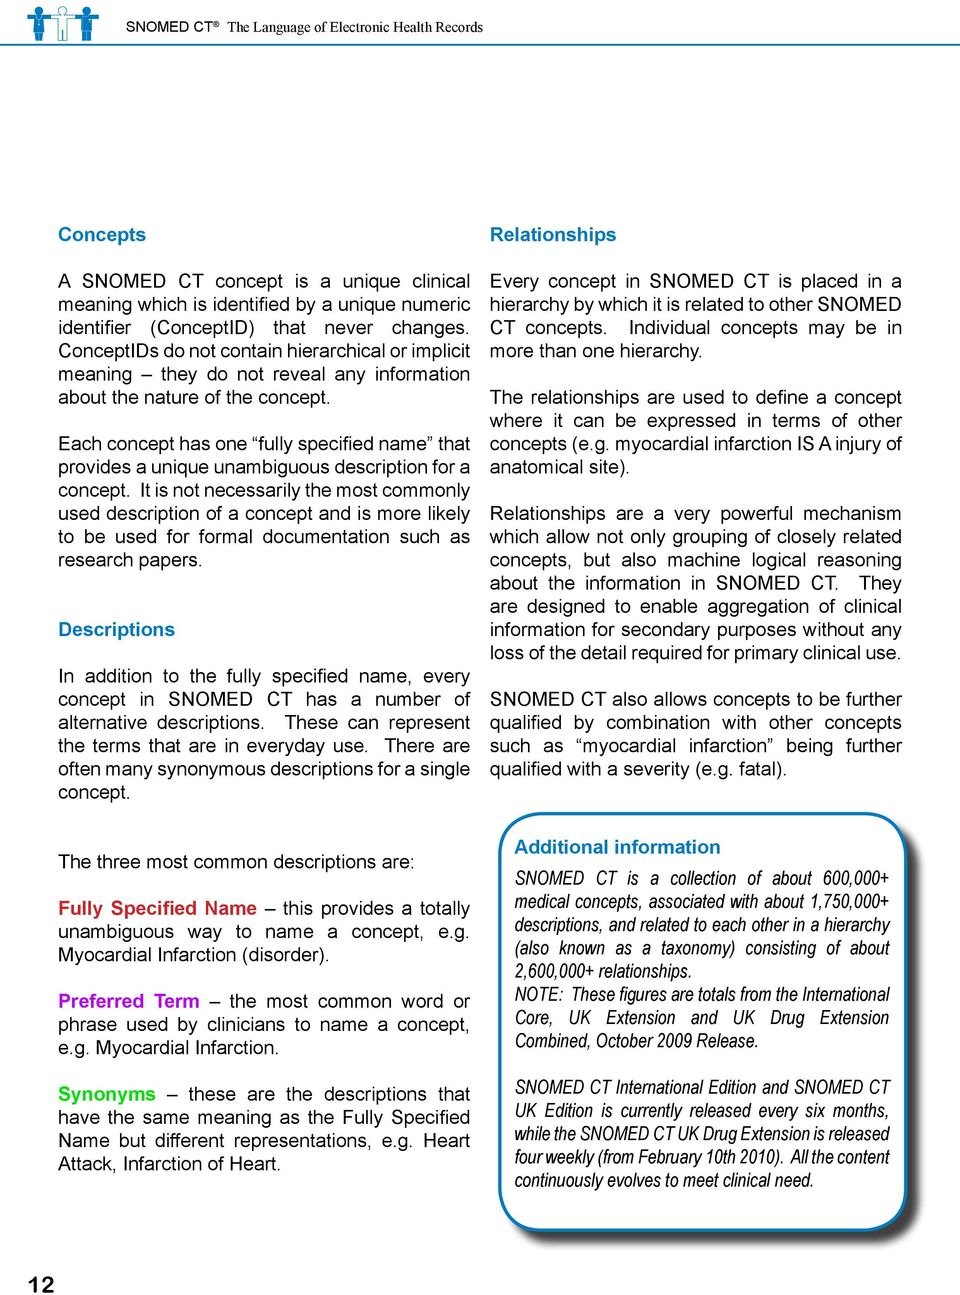 SNOMED CT  The Language of Electronic Health Records - PDF